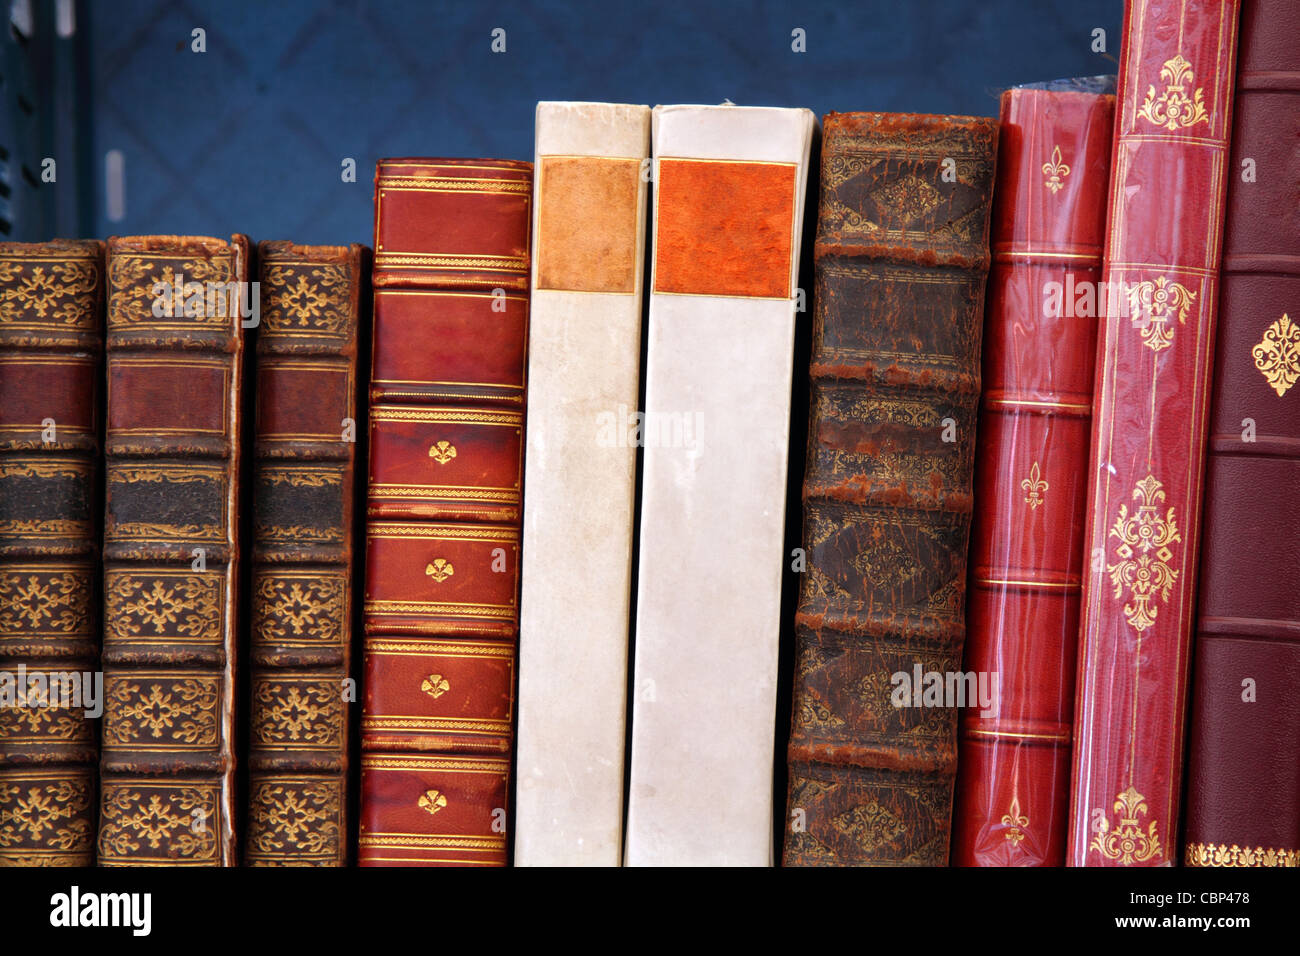 Antiquarian books standing on a shelf - Stock Image